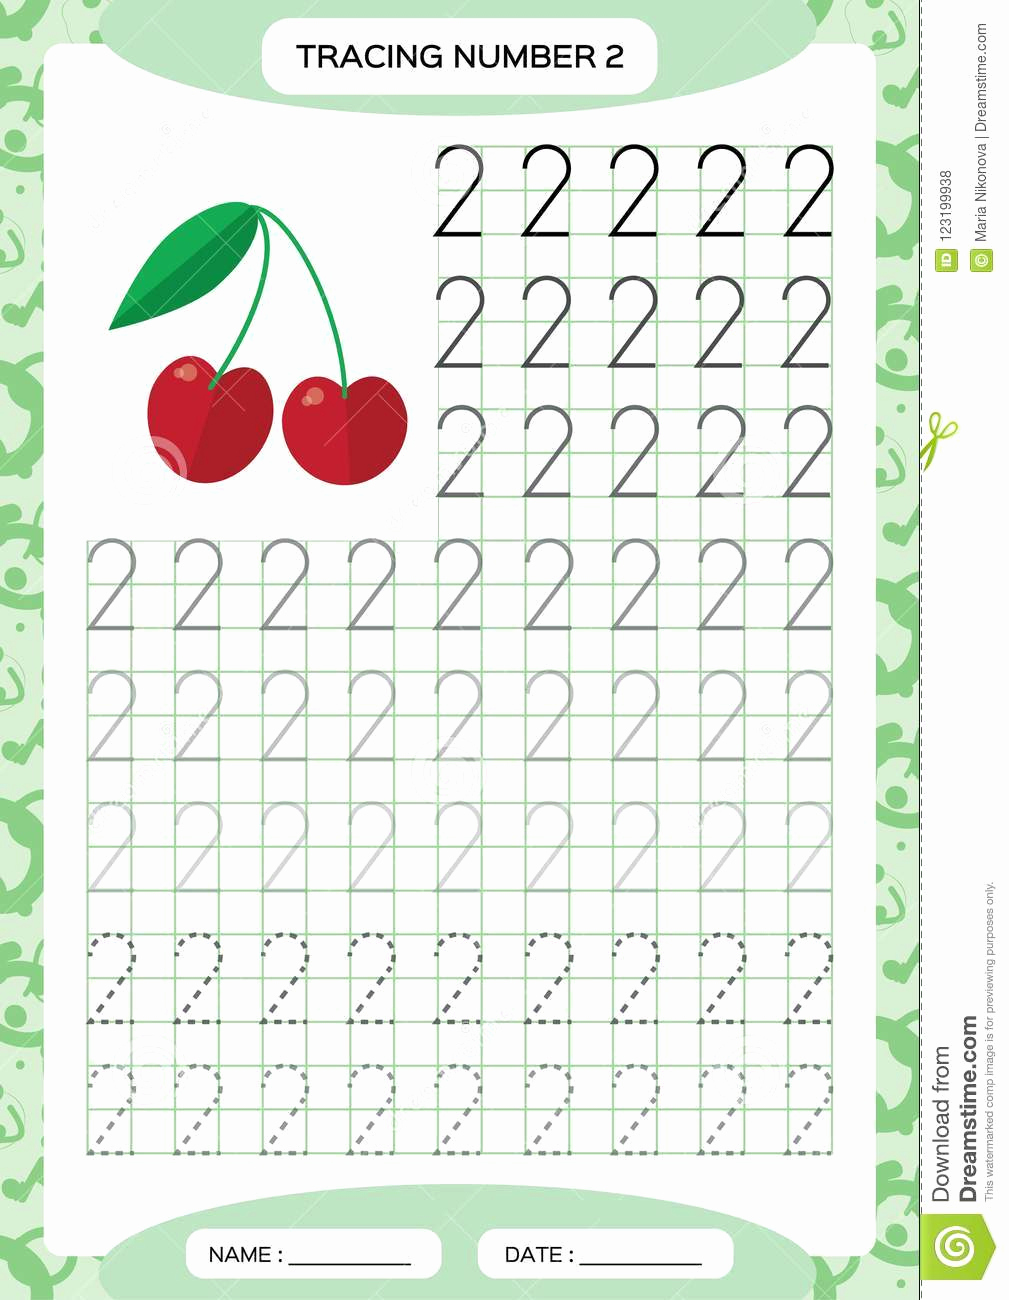 Number 2 Worksheets for Preschool Awesome Number 2 Tracing Worksheets for Preschool